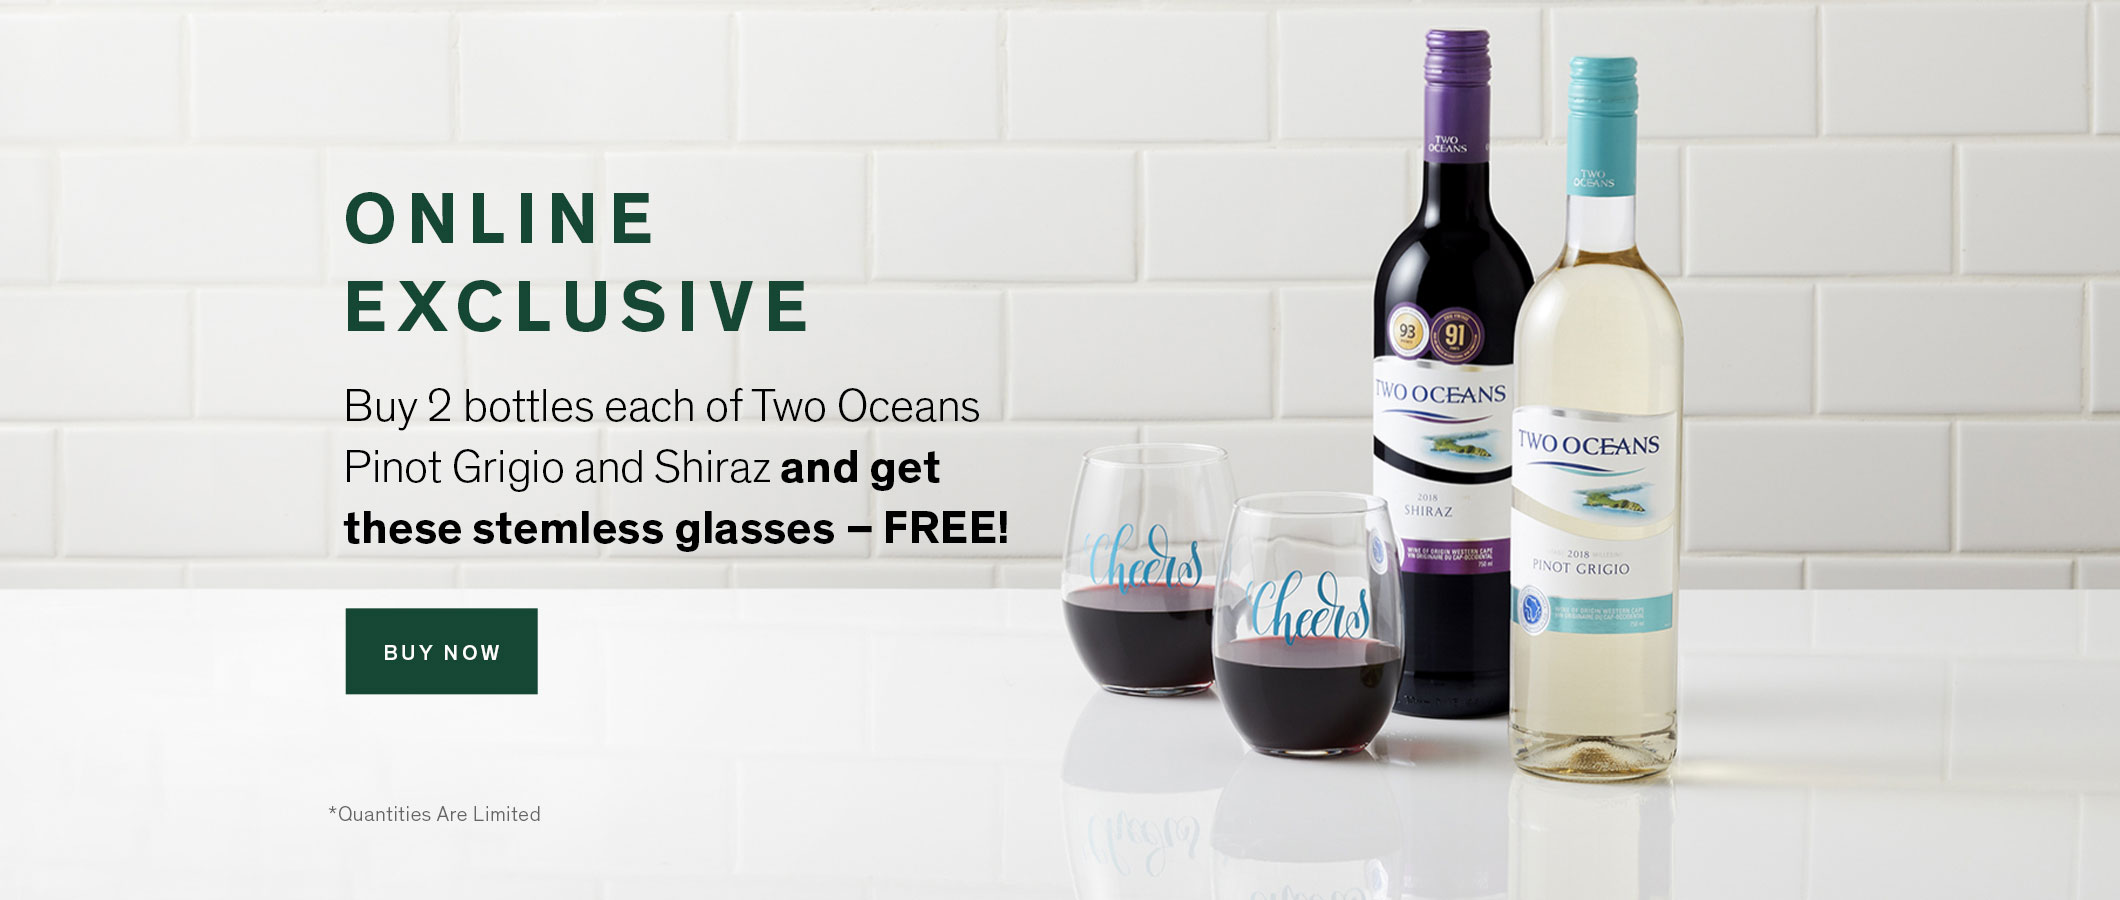 ONLINE EXCLUSIVE  Buy 2 bottles each of Two Oceans Pinot Grigio and Two Oceans Shiraz and get these stemless glasses – FREE!